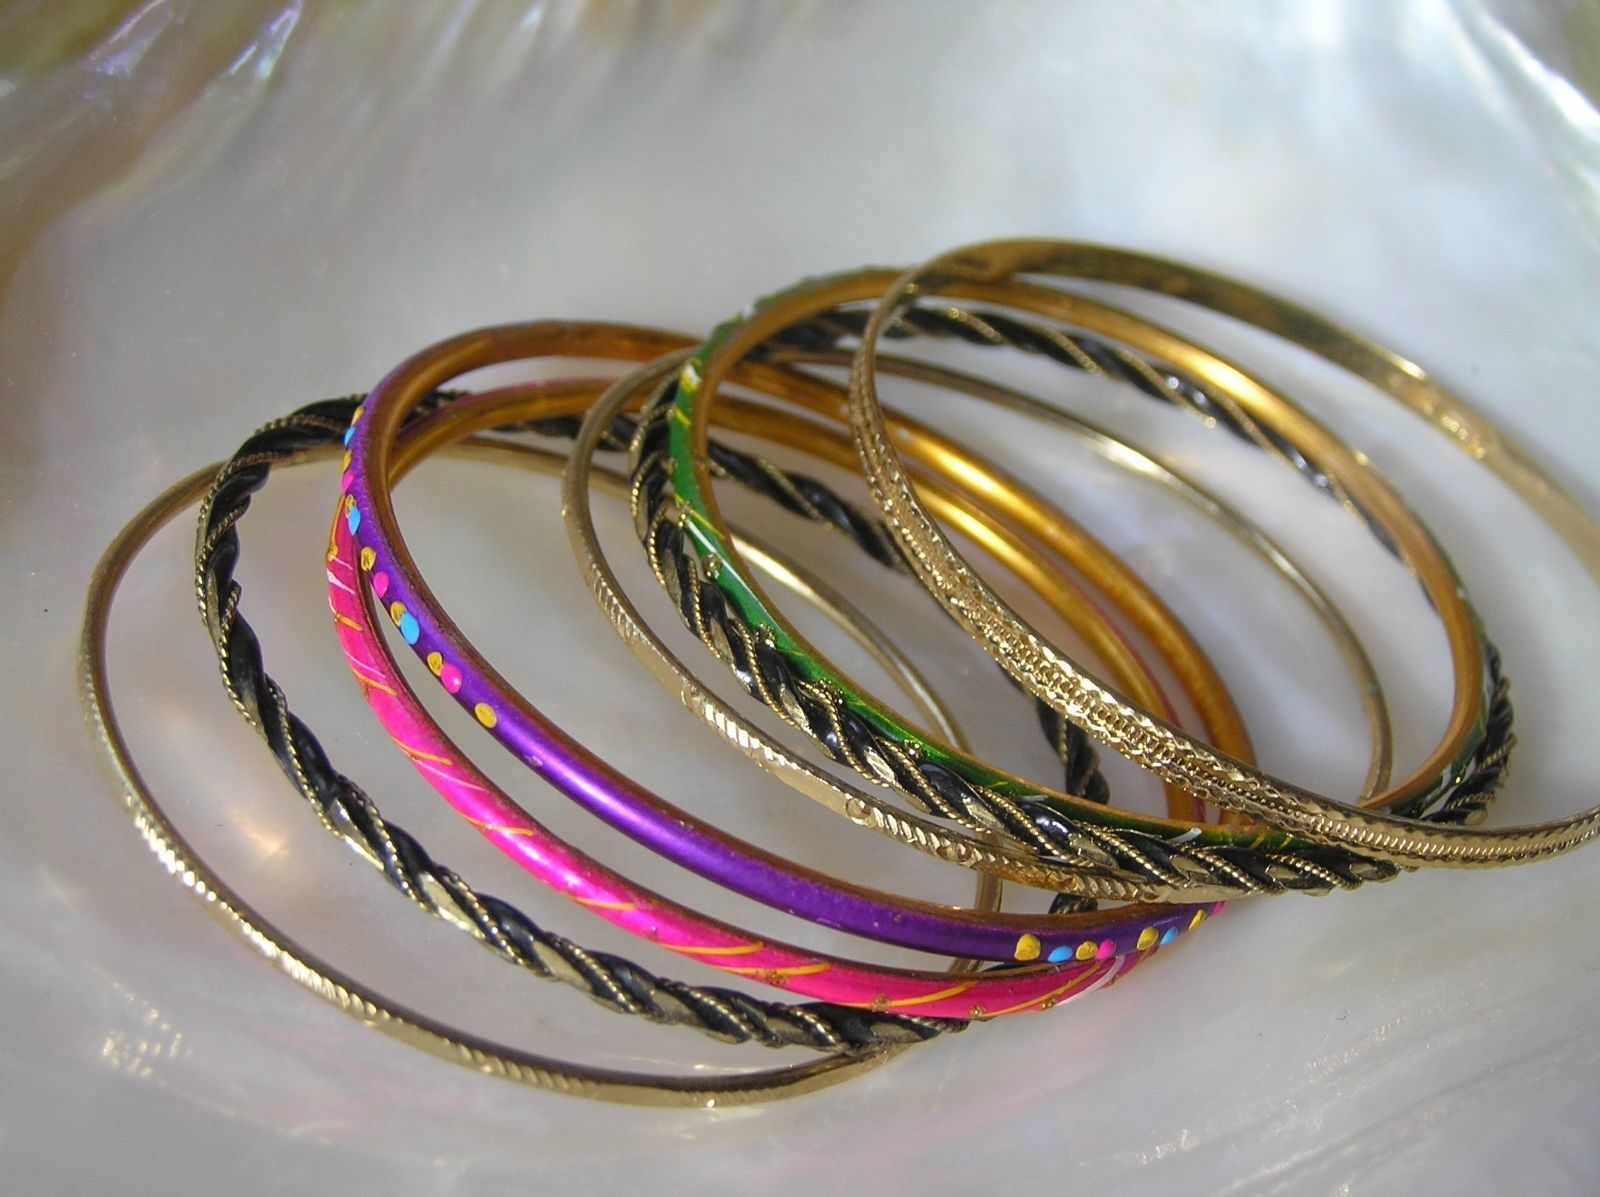 Lot of 8 Purple Pink Green Enamel Black & Goldtone Twist Variety Bangle Bracelet